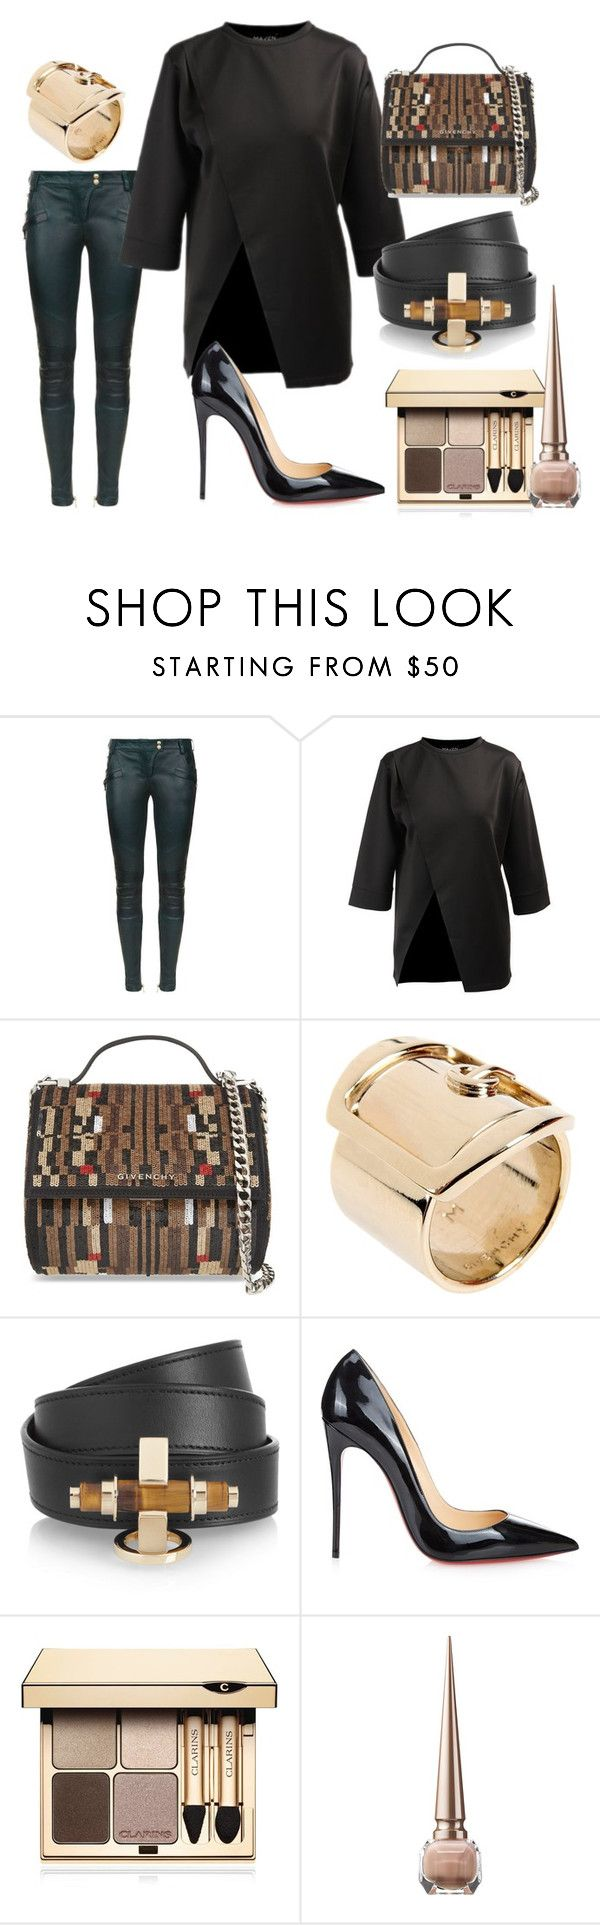 A NIGHT ON THE TOWN by iamamaven on Polyvore featuring Balmain, Christian Louboutin, Givenchy and Clarins